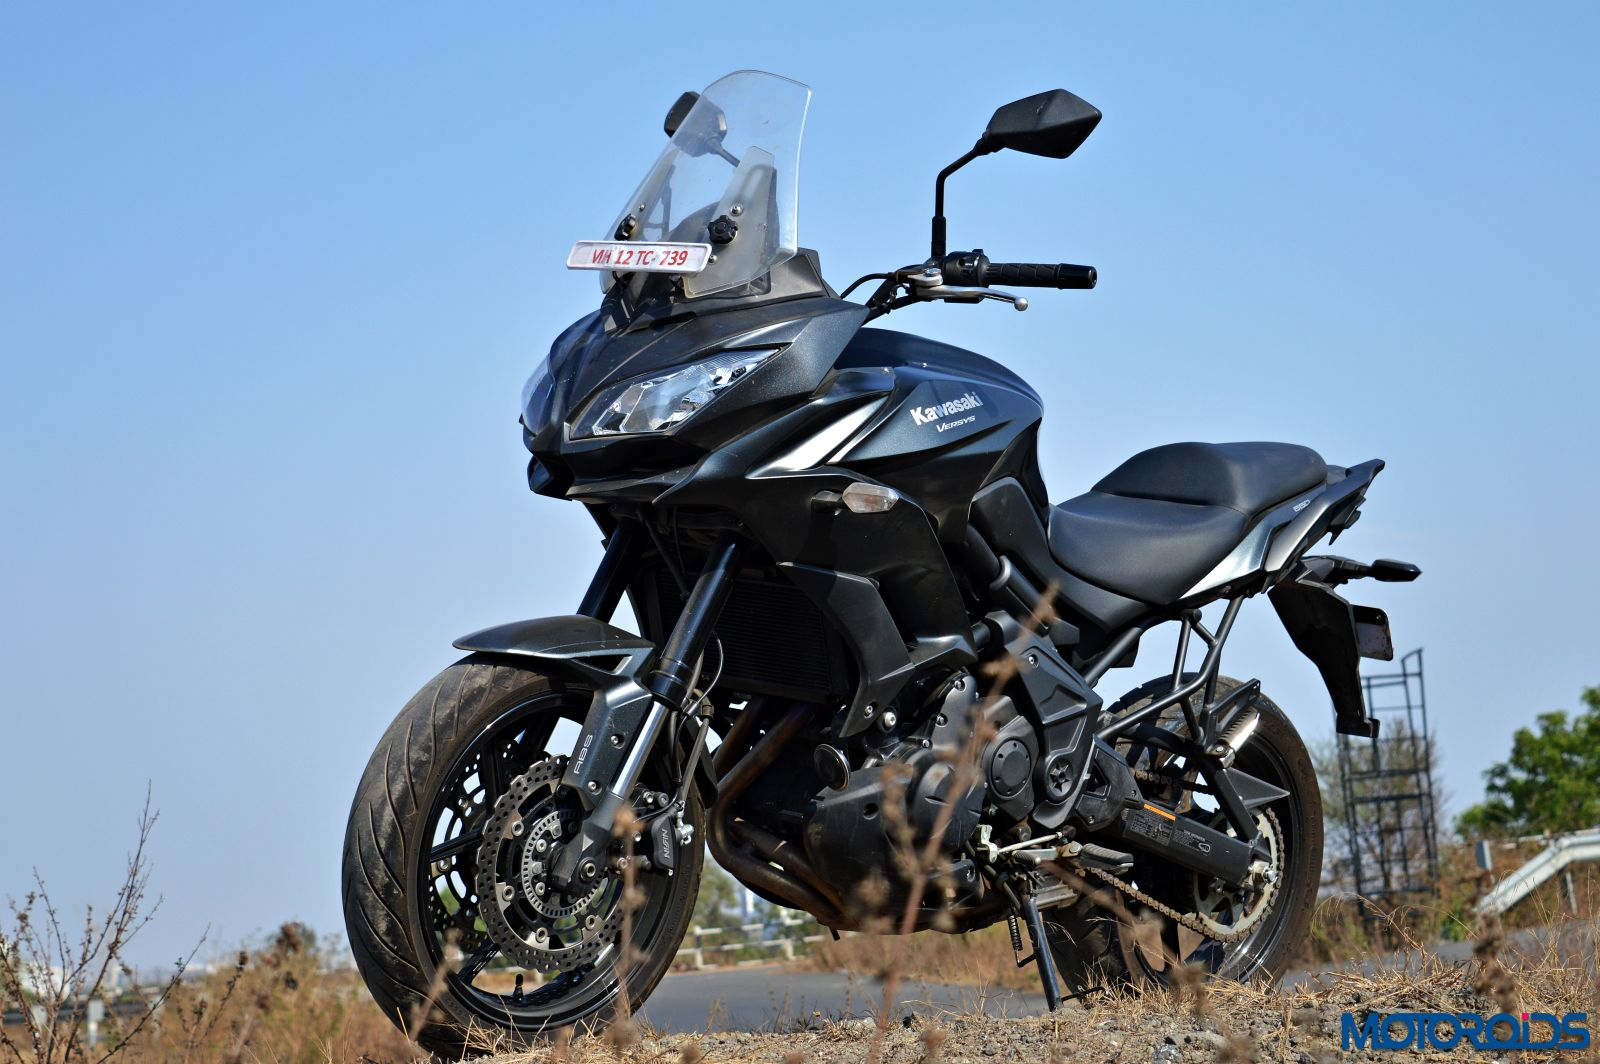 Kawasaki Versys 650 - Review - Still Shots (2)